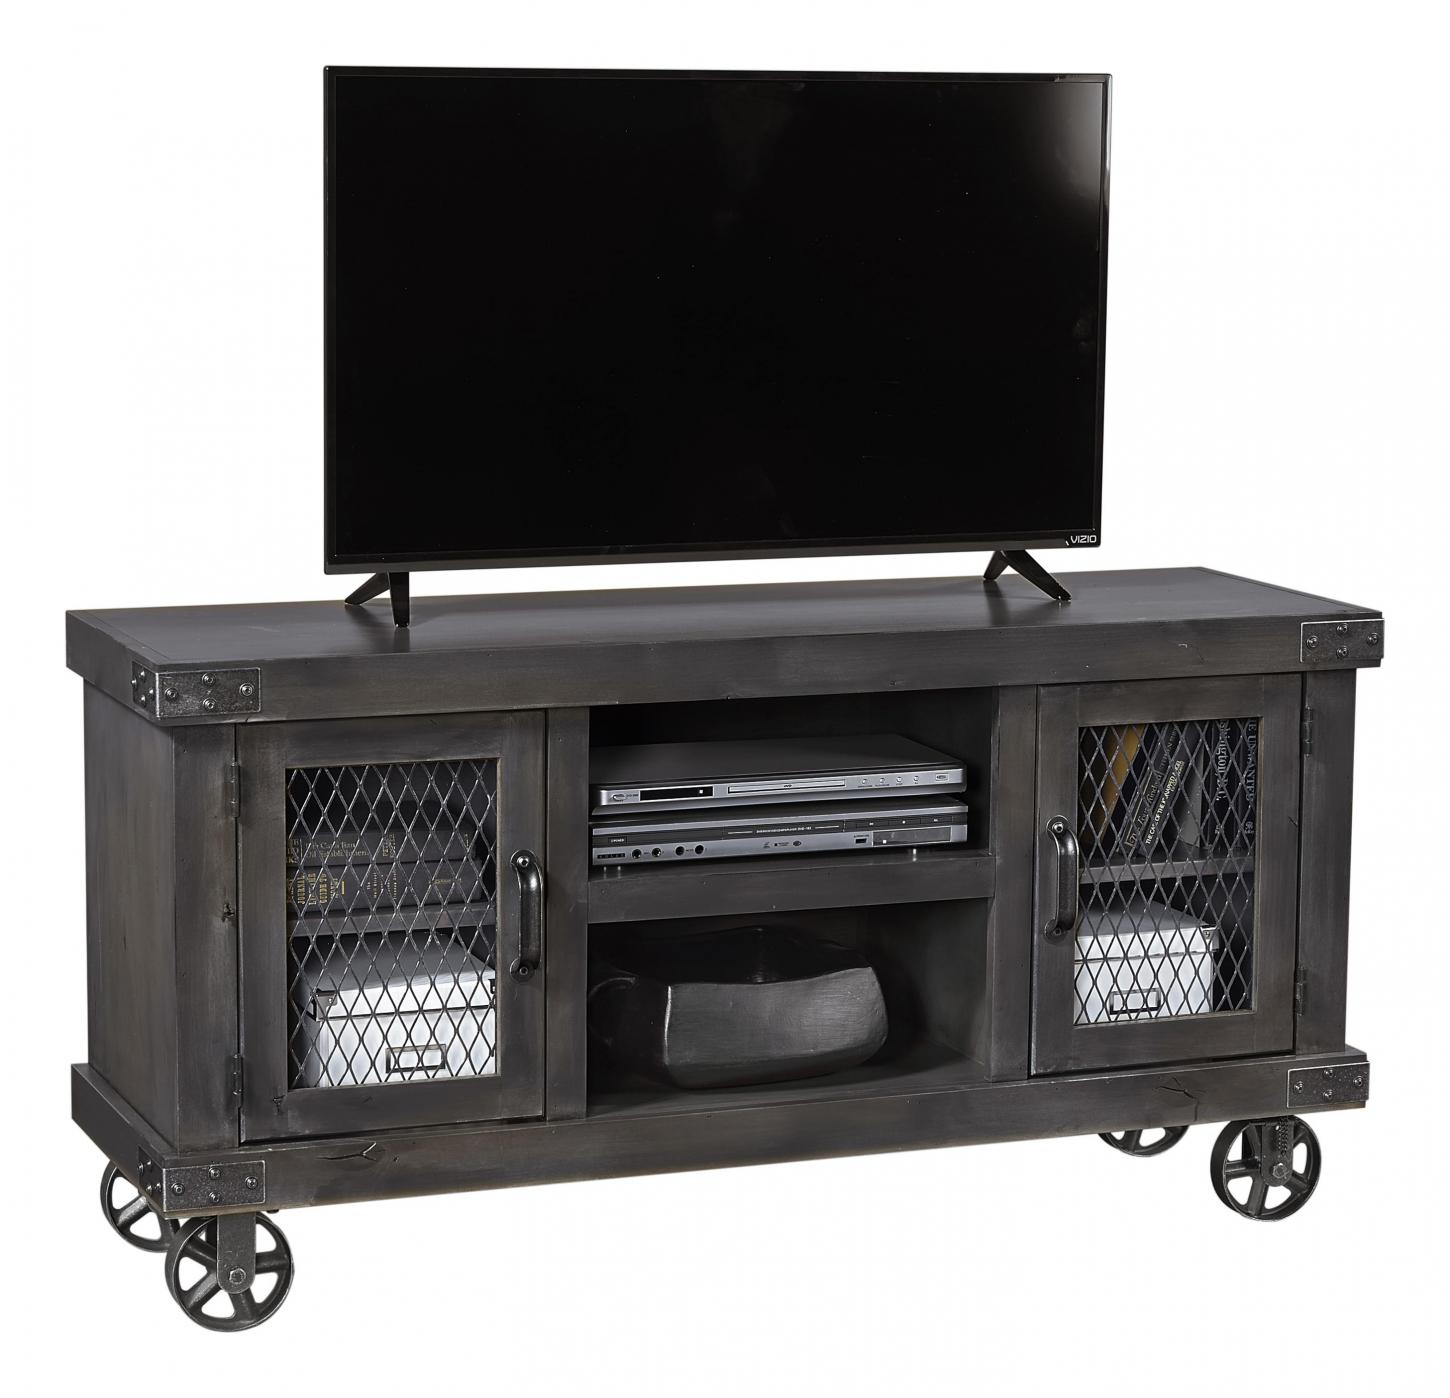 "Industrial 55"" Console in the Ghost Black finish"